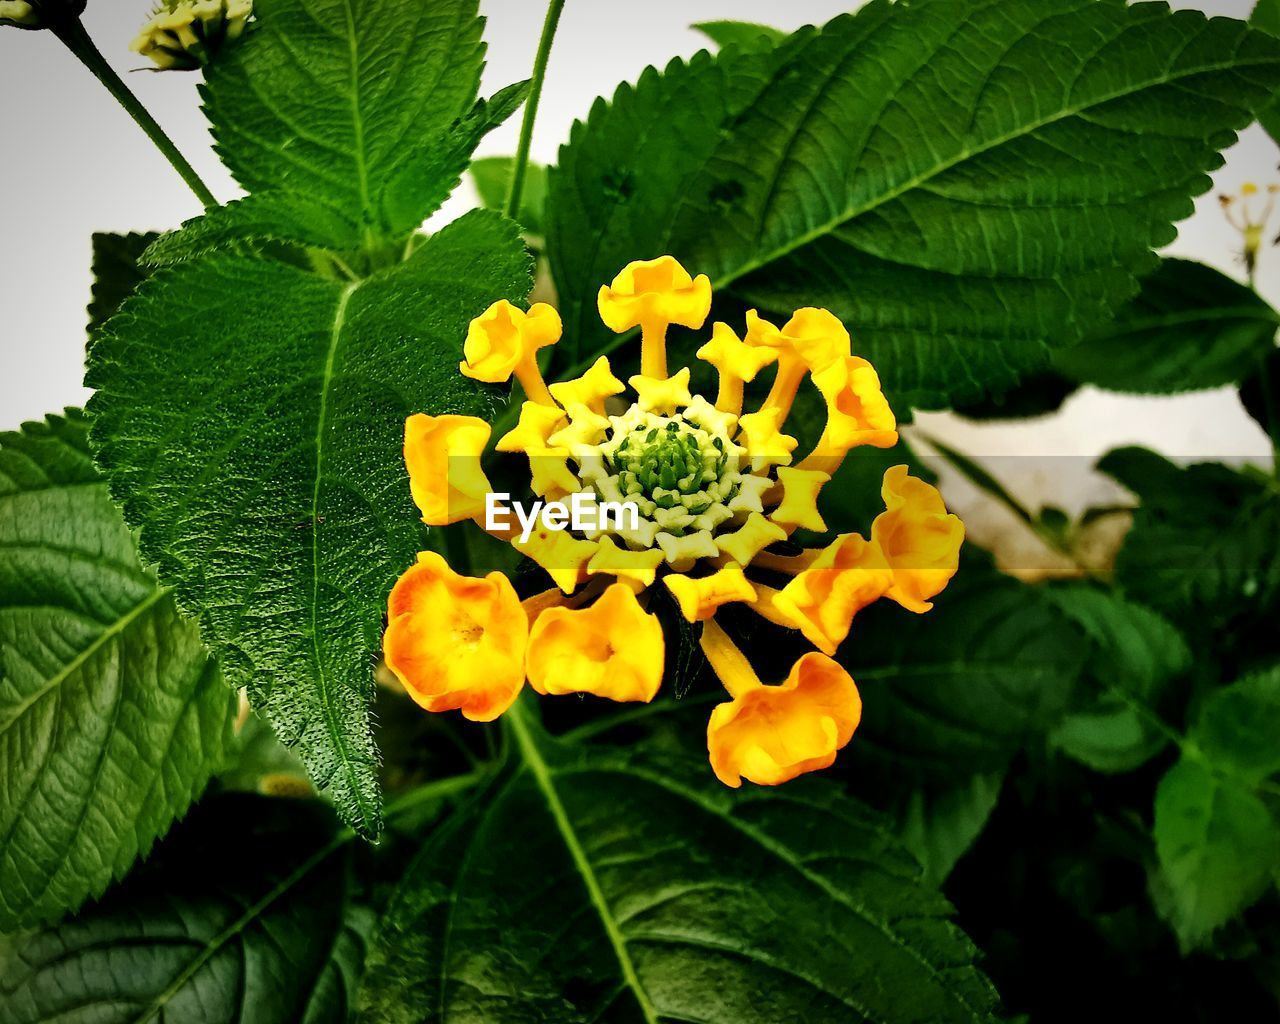 plant, leaf, plant part, growth, flower, flowering plant, freshness, beauty in nature, close-up, fragility, petal, yellow, flower head, vulnerability, green color, nature, inflorescence, day, focus on foreground, no people, lantana, outdoors, pollen